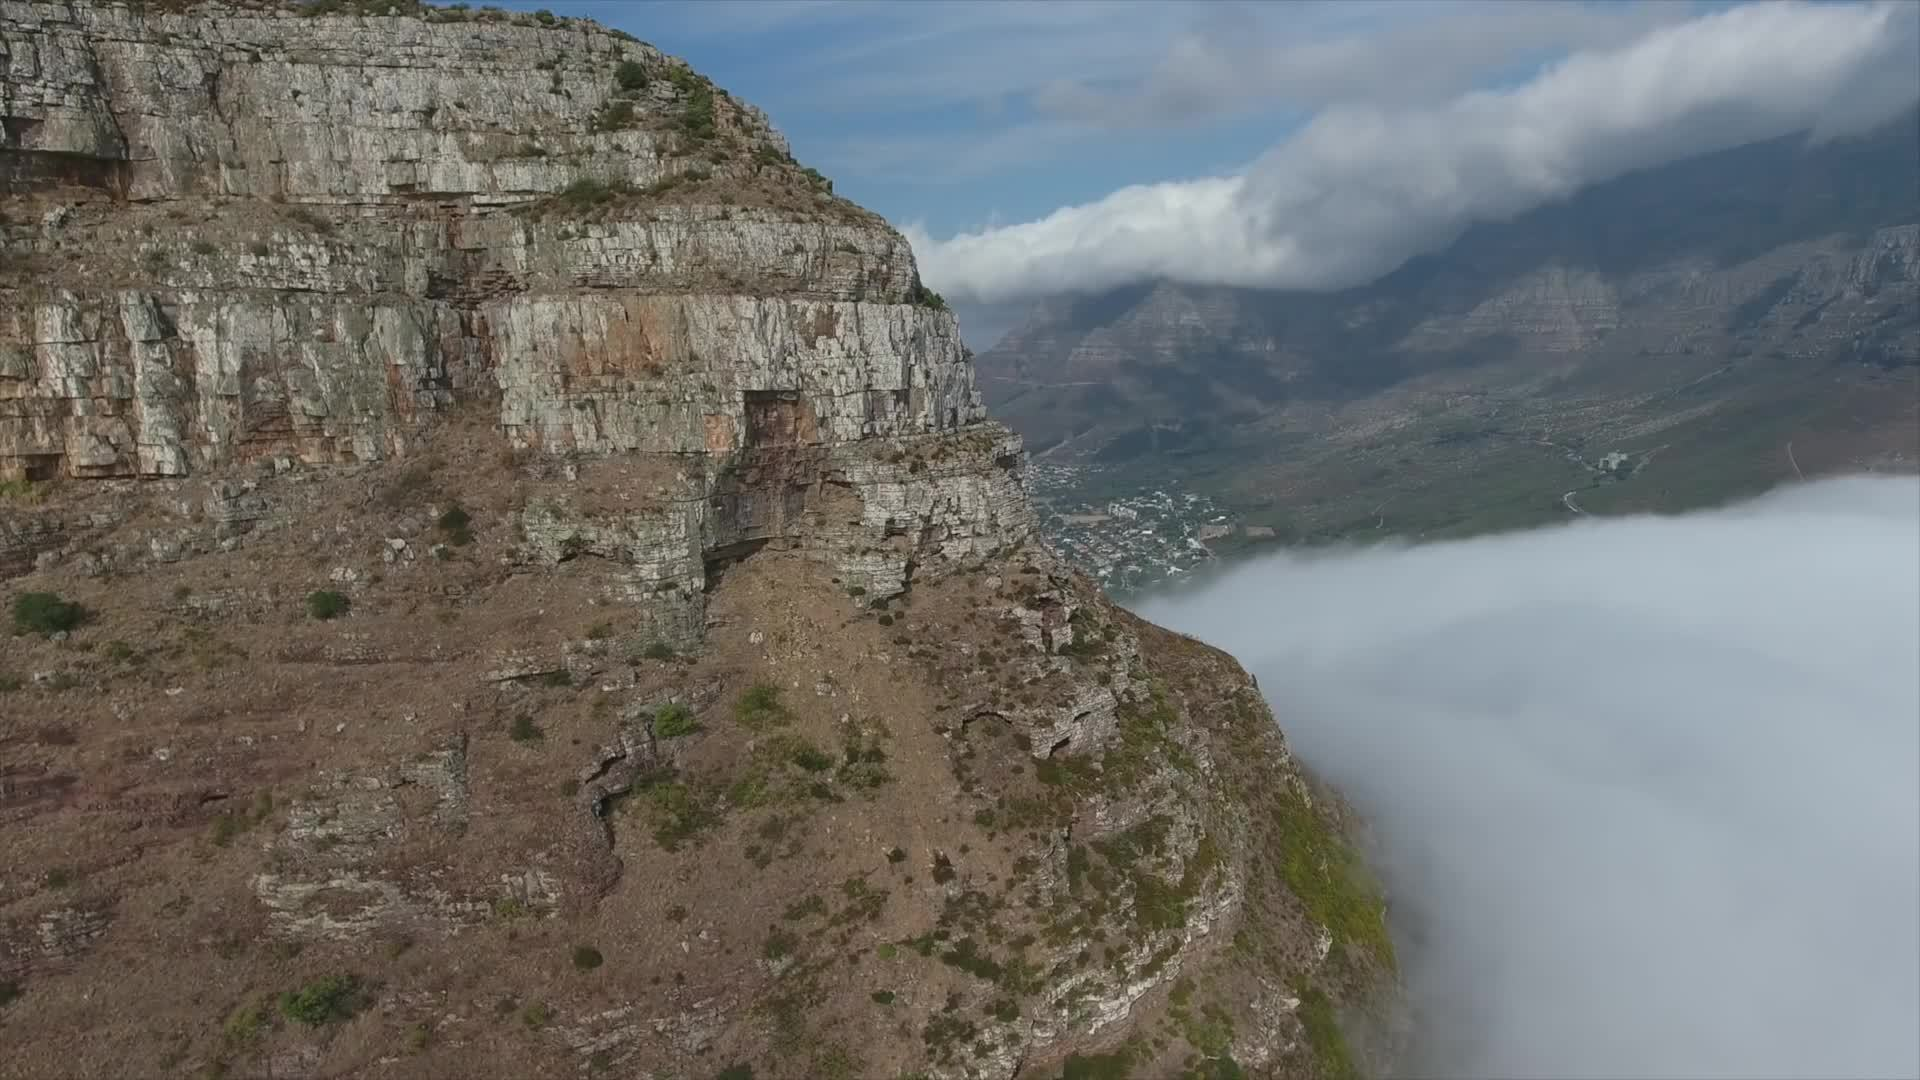 earthgifs, southafrica, Capetown South Africa GIFs